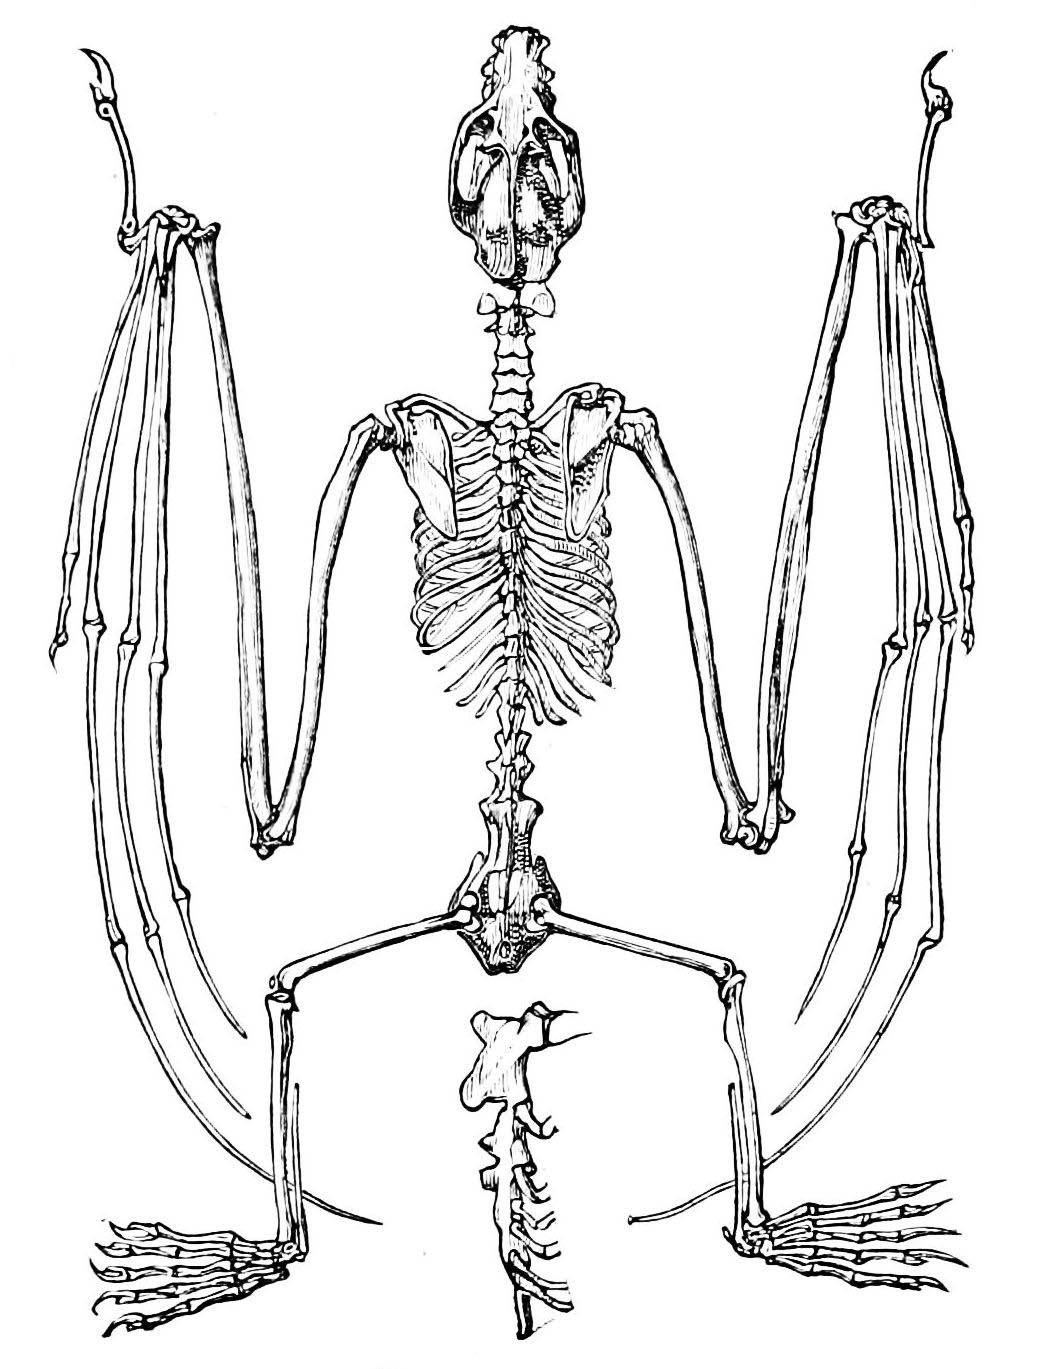 Bat skeleton drawing - photo#24